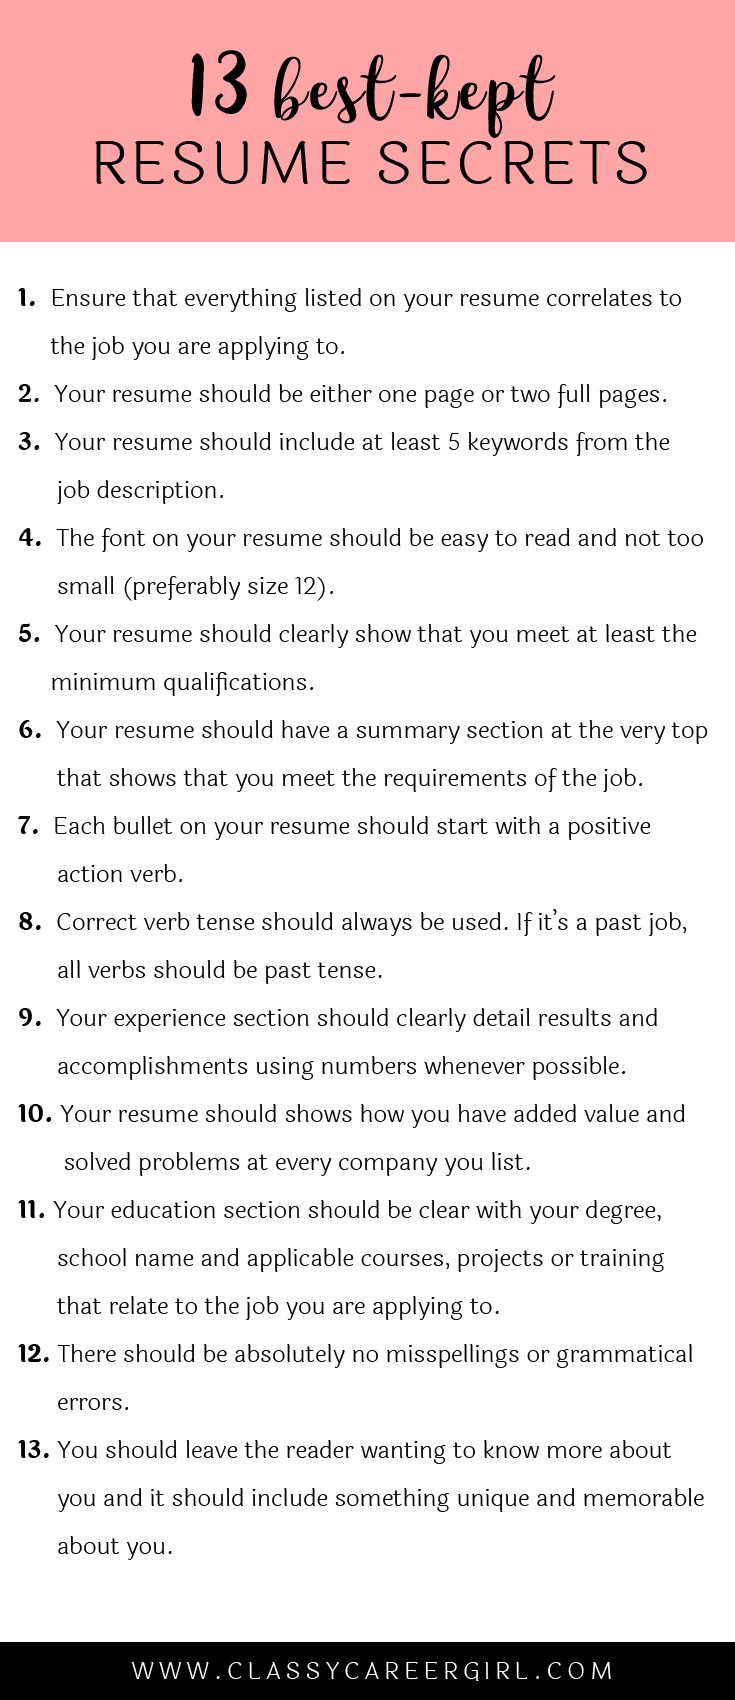 Opposenewapstandardsus  Marvellous  Ideas About Resume On Pinterest  Cv Format Resume Cv And  With Exquisite Some Hiring Managers Will Toss Your Resume Out If You Dont Know These  With Captivating Where Can I Make A Free Resume Also Retail Resume Objective Examples In Addition Retail Sales Associate Job Description Resume And Functional Resume Template Free As Well As Example Of Perfect Resume Additionally Resumes Writing From Pinterestcom With Opposenewapstandardsus  Exquisite  Ideas About Resume On Pinterest  Cv Format Resume Cv And  With Captivating Some Hiring Managers Will Toss Your Resume Out If You Dont Know These  And Marvellous Where Can I Make A Free Resume Also Retail Resume Objective Examples In Addition Retail Sales Associate Job Description Resume From Pinterestcom